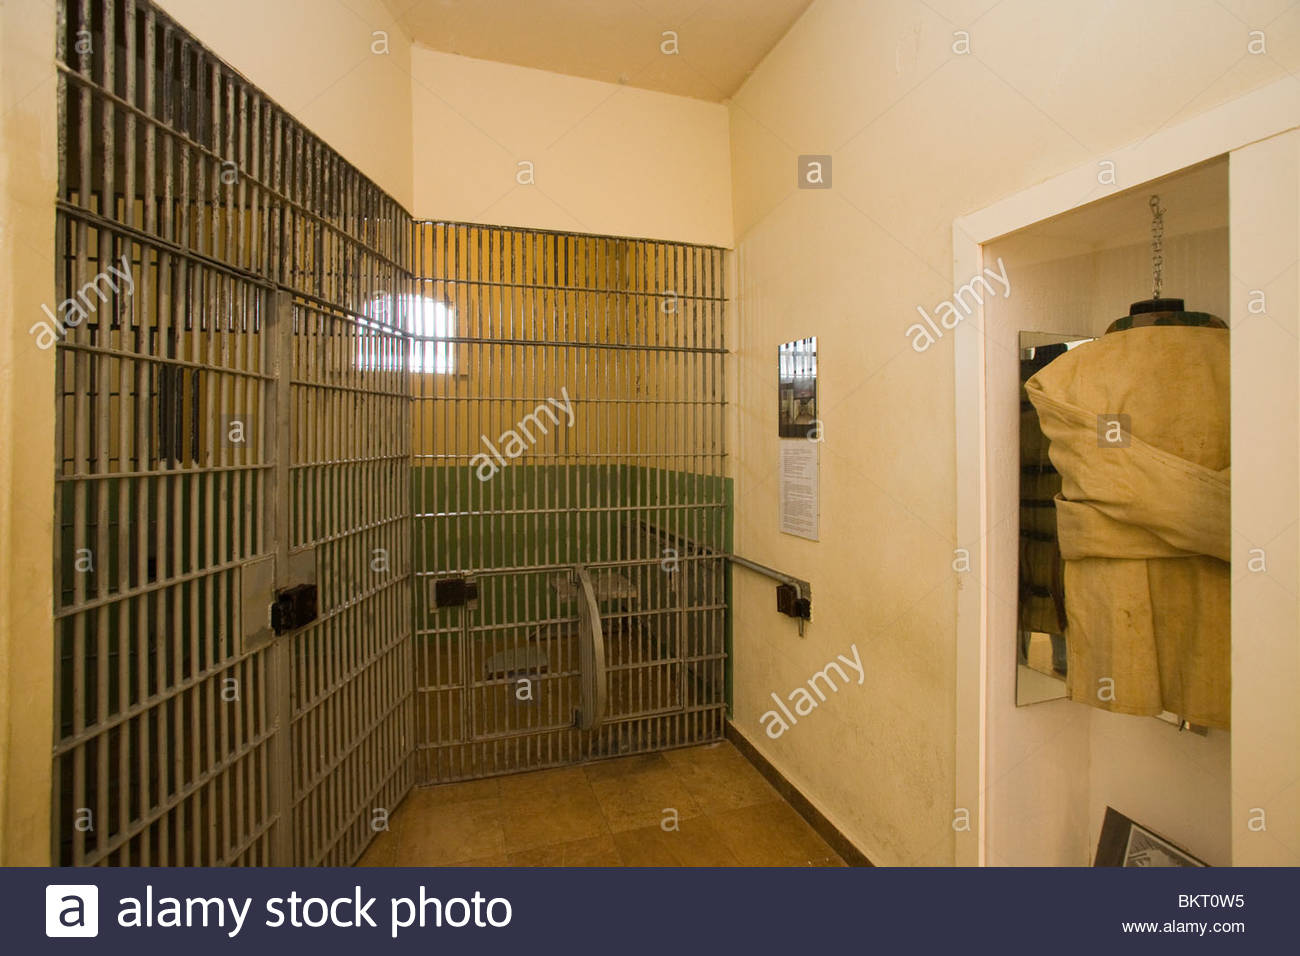 cells,the Stasi secret center at the time of the GDR,the Stasi Museum,Berlin,Germany - Stock Image